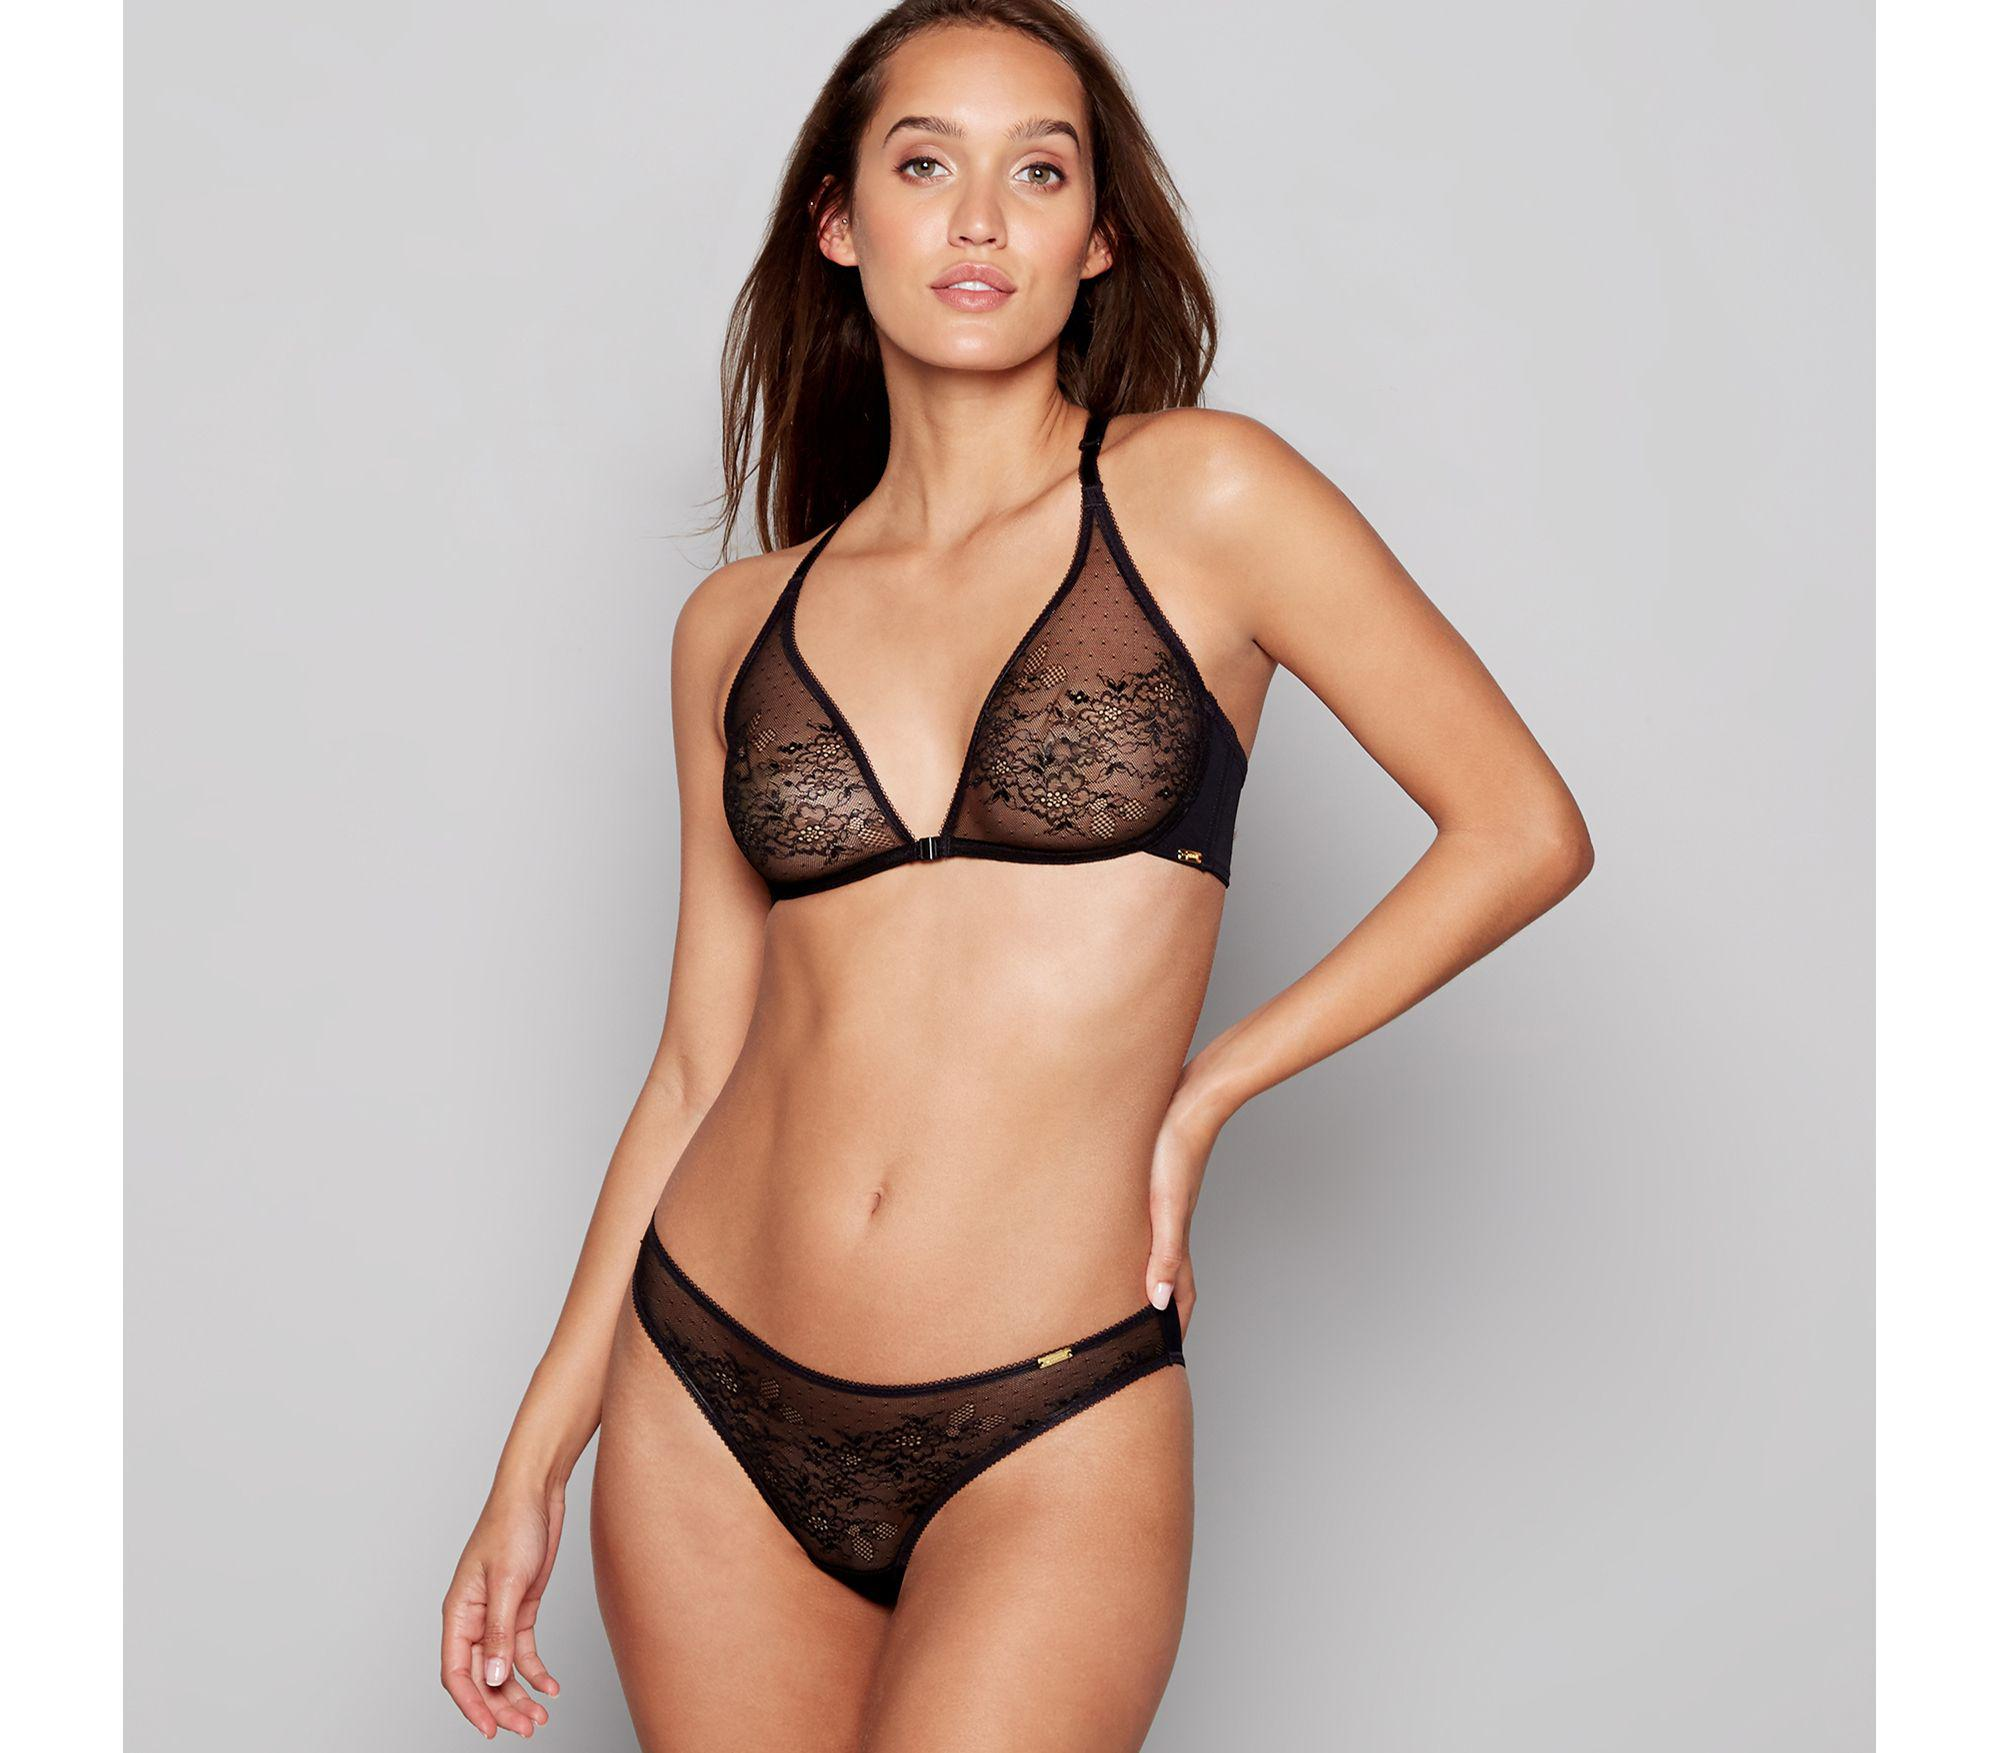 0f737c2f64 Gossard Black Lace Non-wired Non-padded Triangle Bra in Black - Lyst